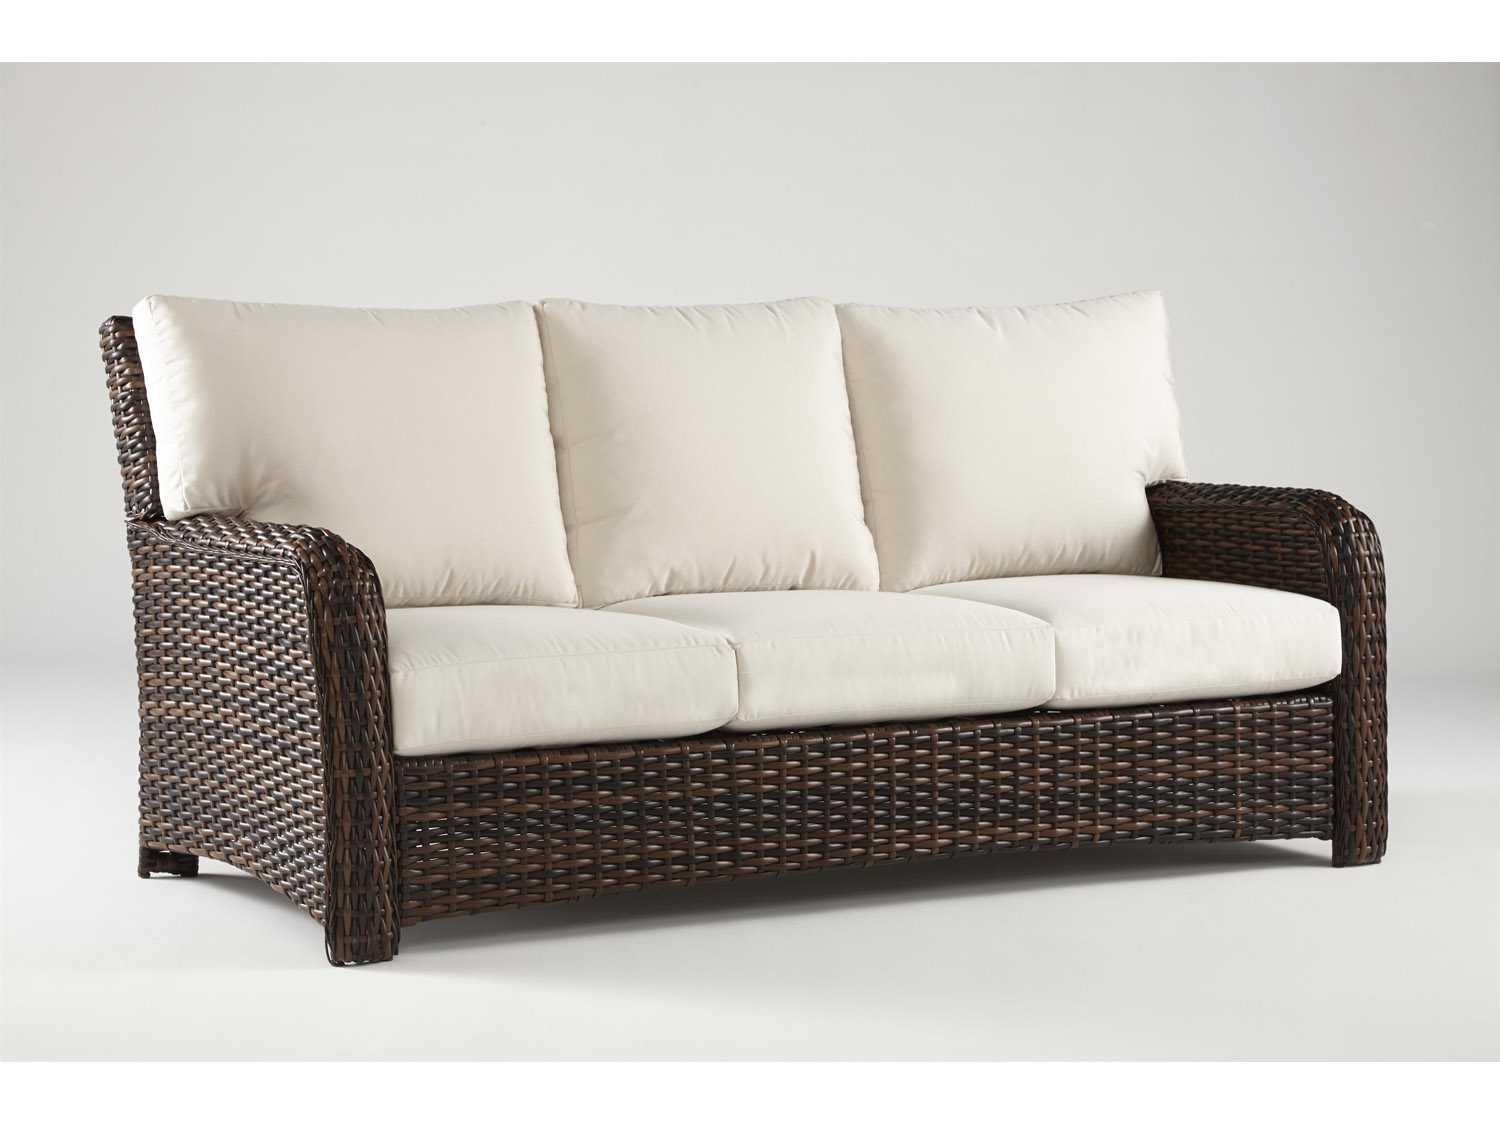 spring haven brown all weather wicker patio sofa sectional sleeper at sears outdoor hampton bay 30 in